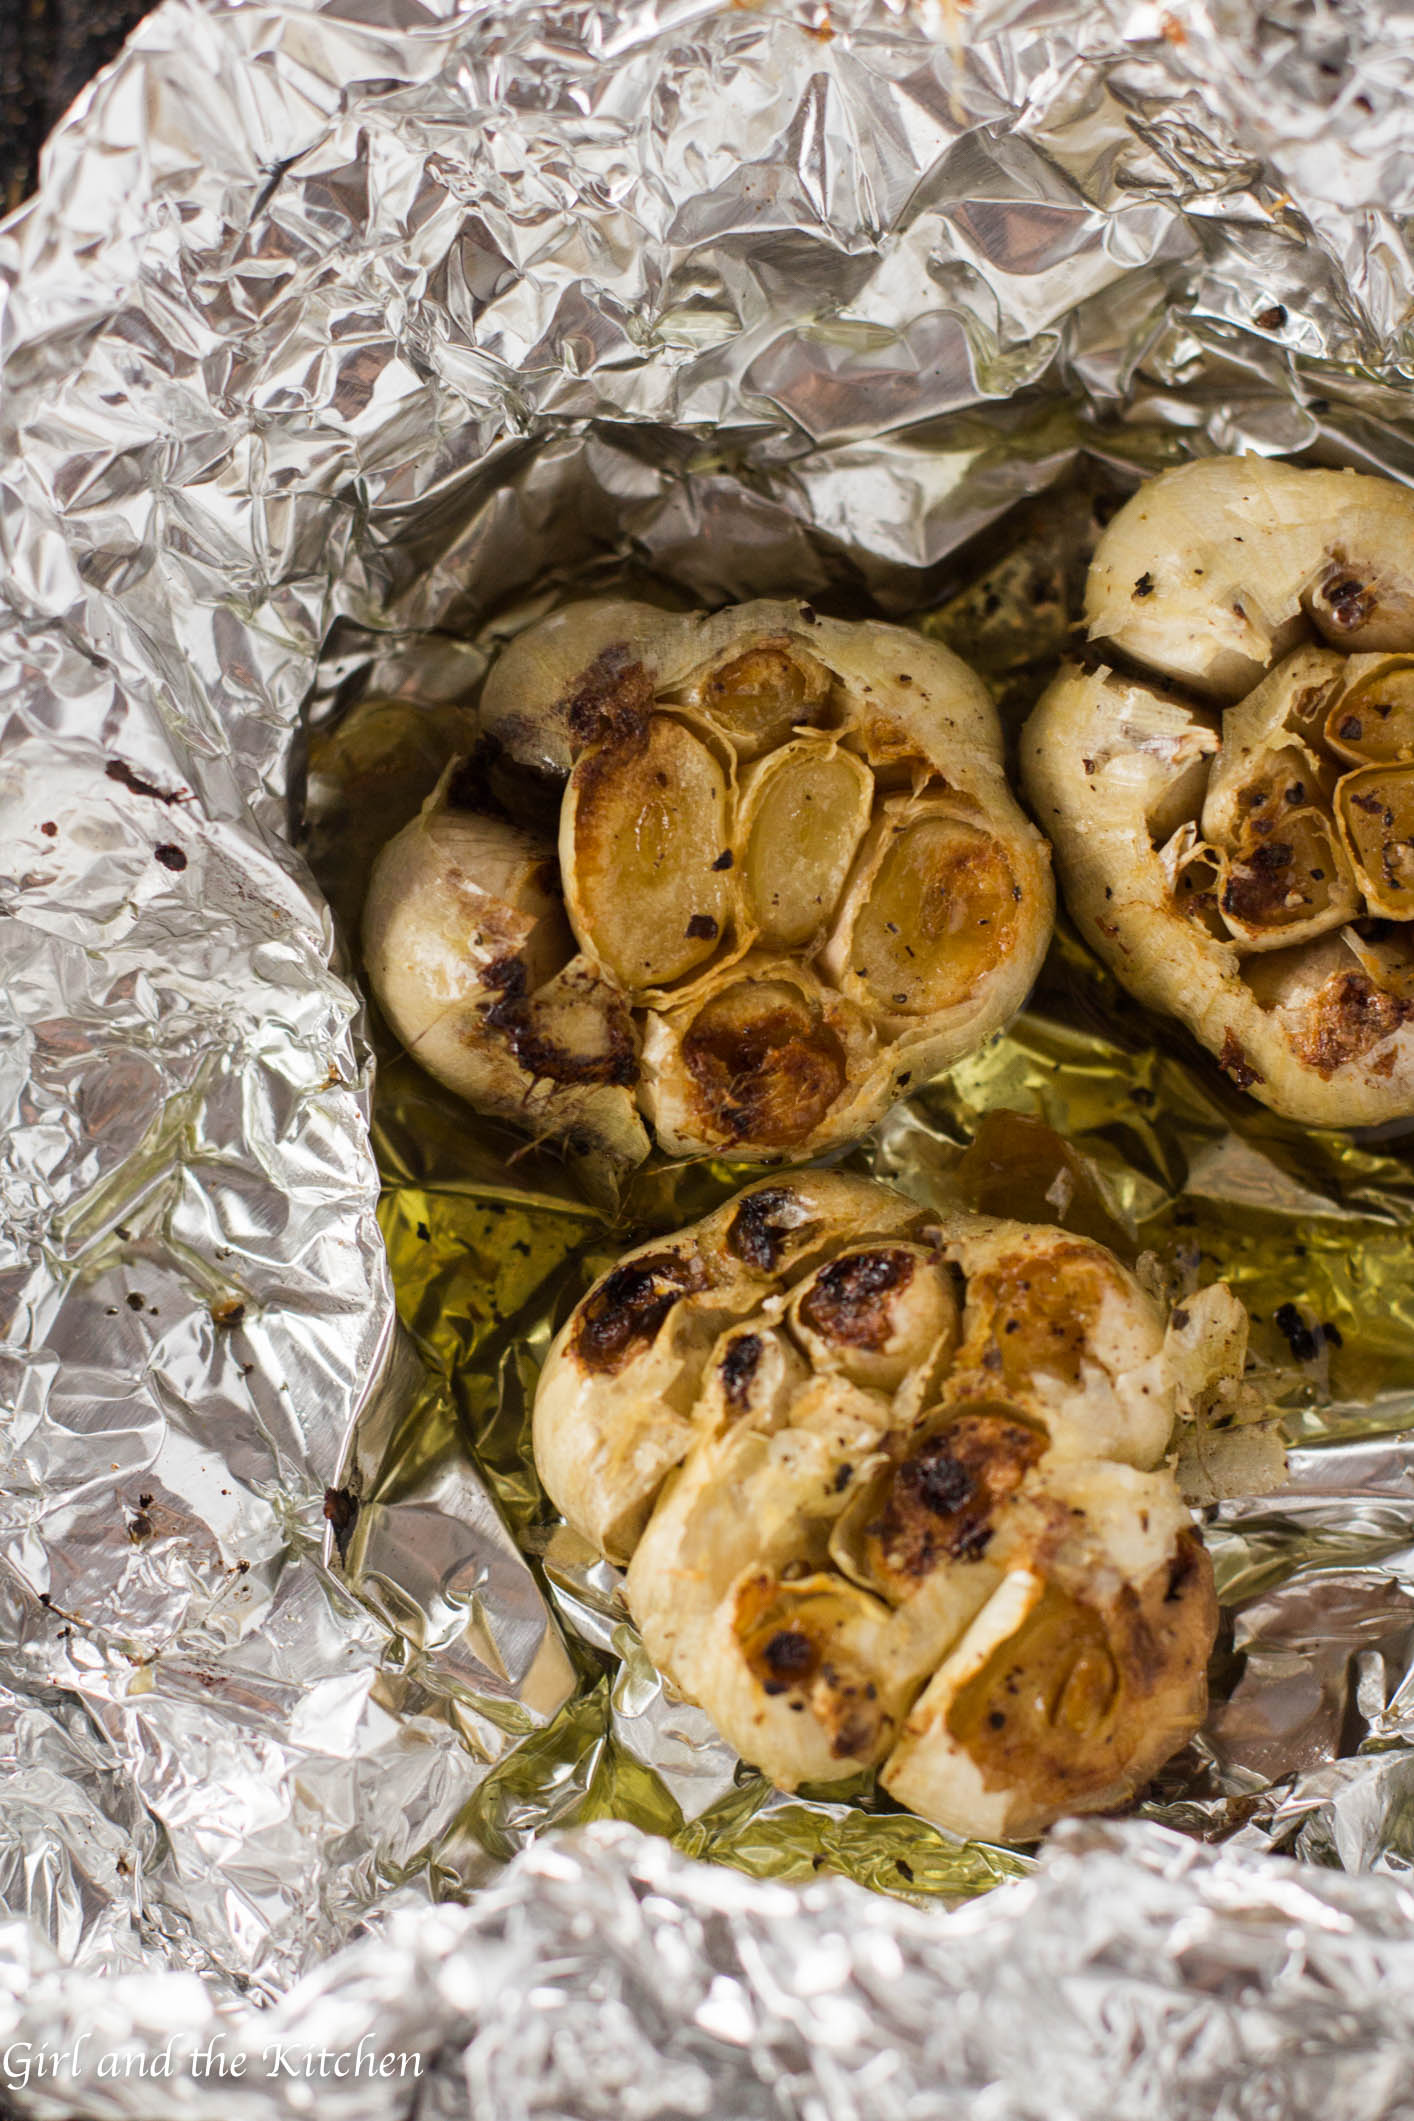 Did you know that there is a secret to restaurant dishes? Yes I mean other than butter. It's roasted garlic. And the beauty is that it's super easy to make.